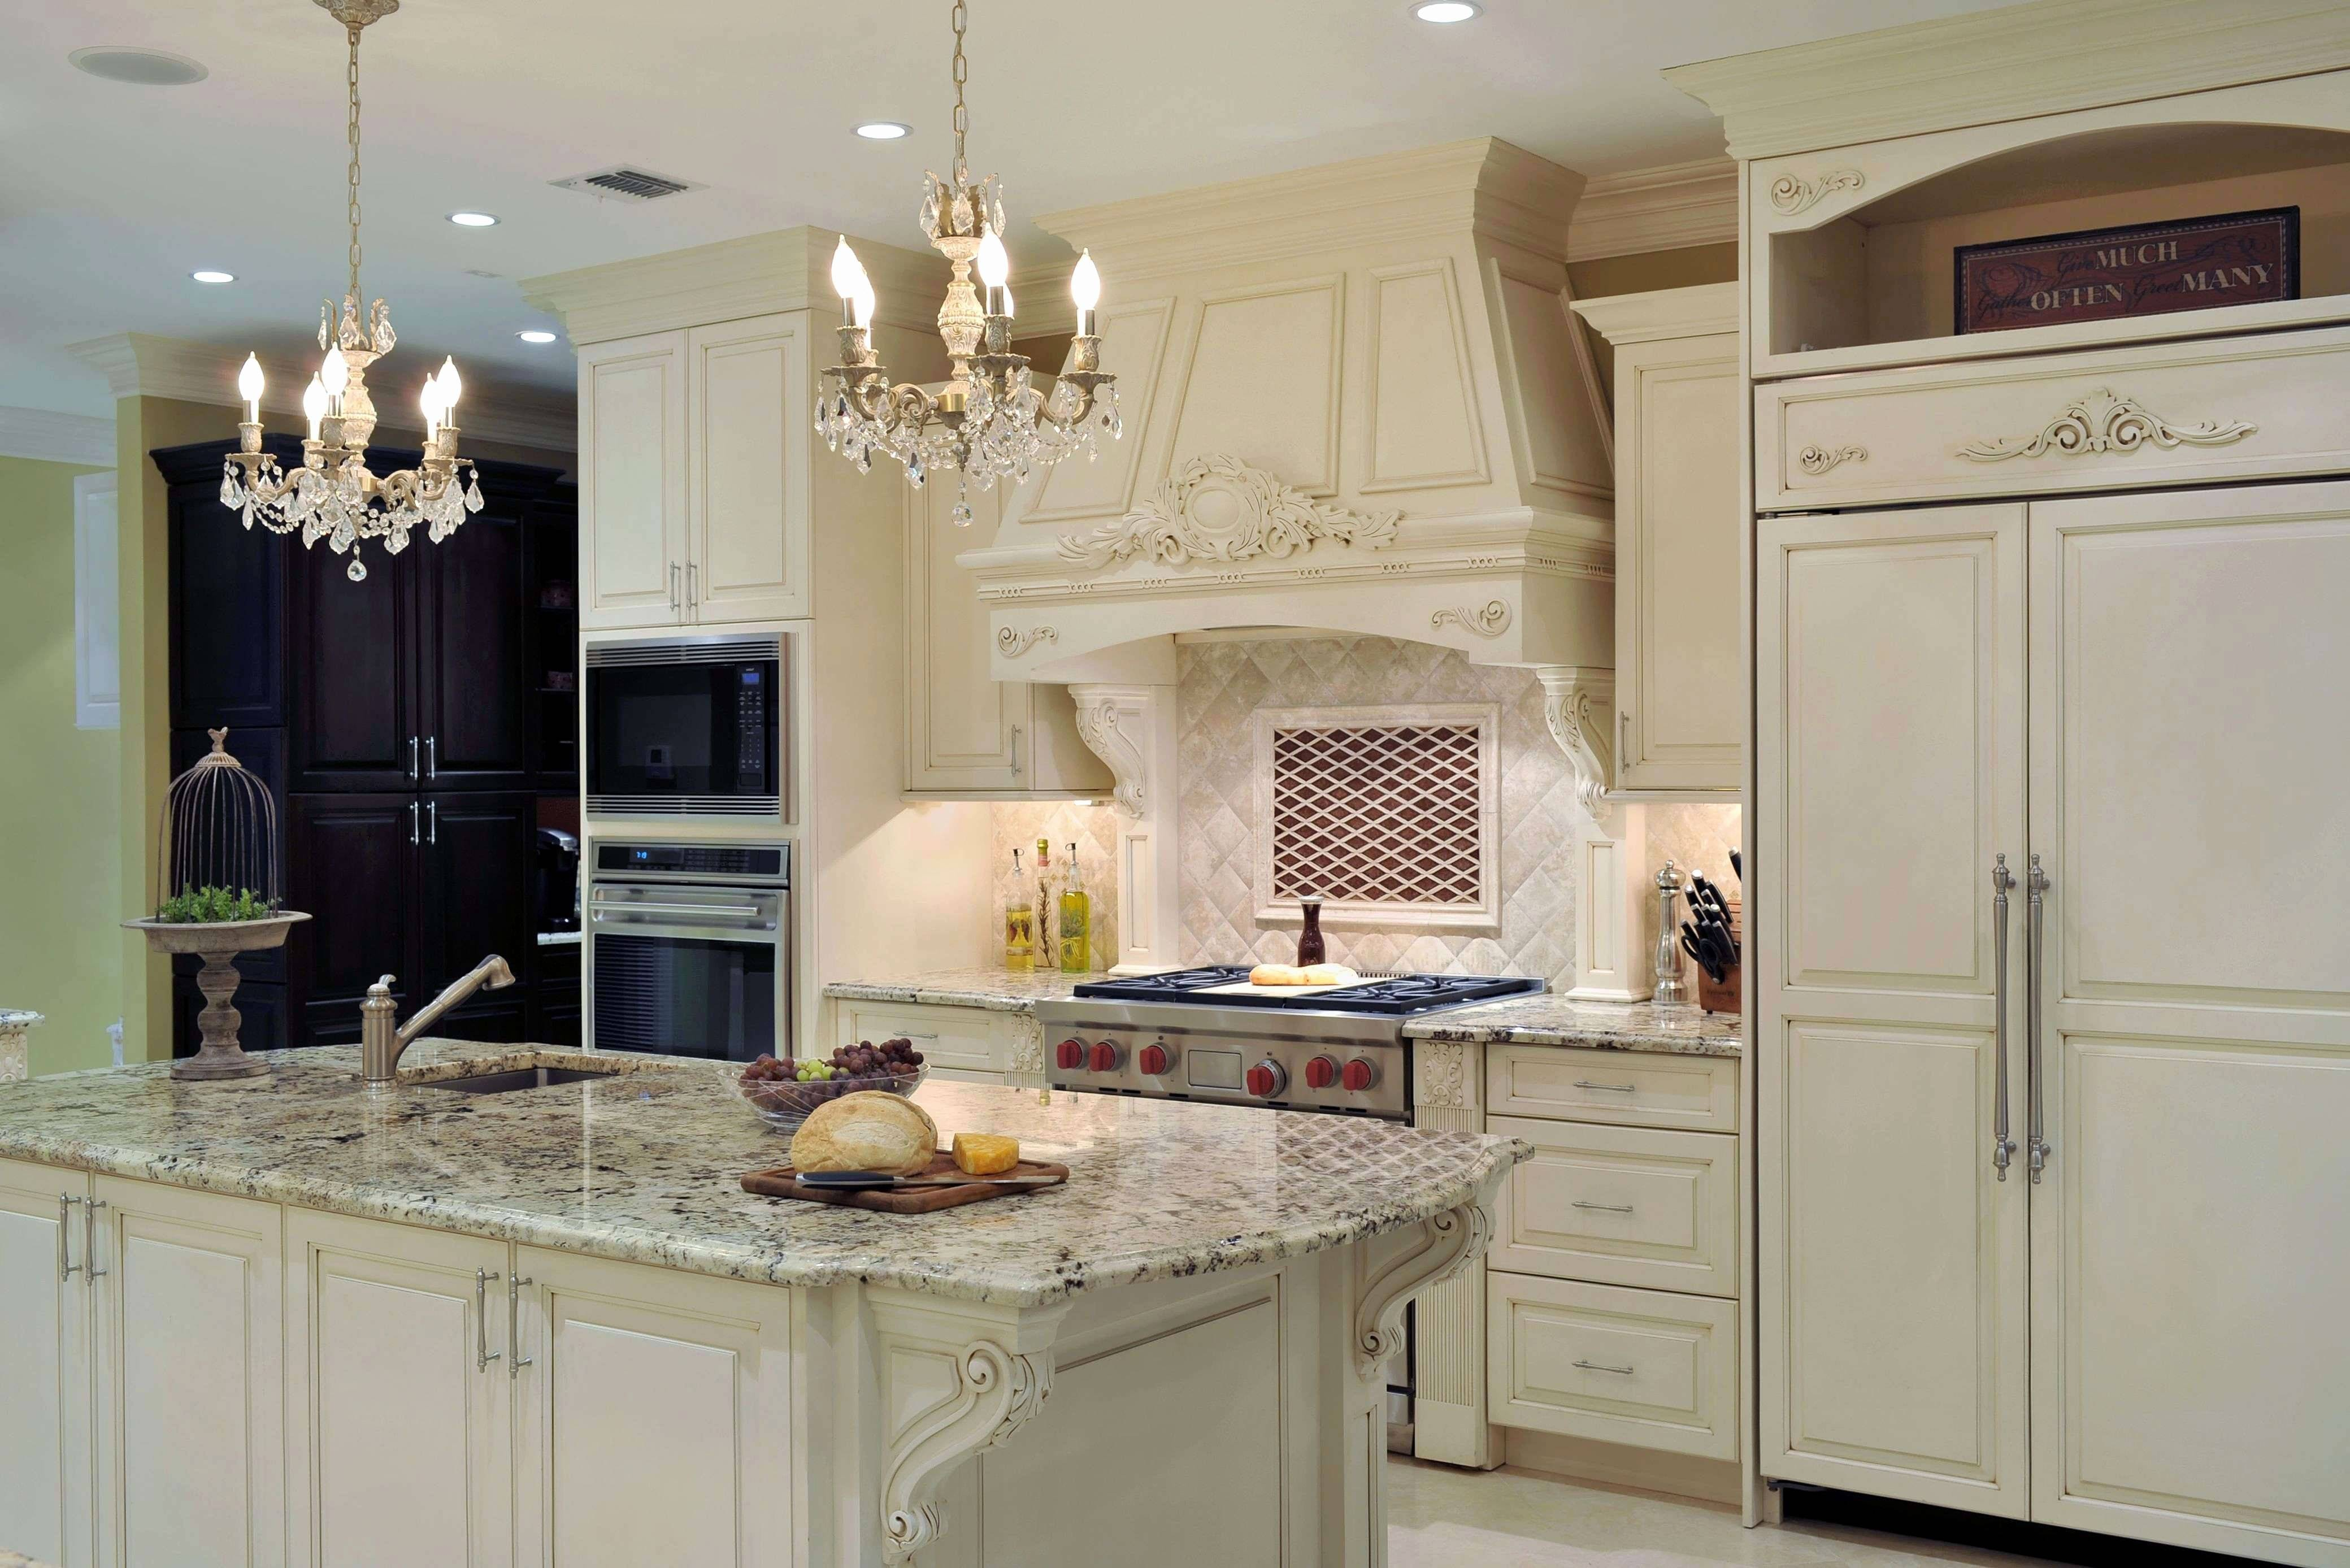 French Country Kitchen Bring Rustic Style in Your Home